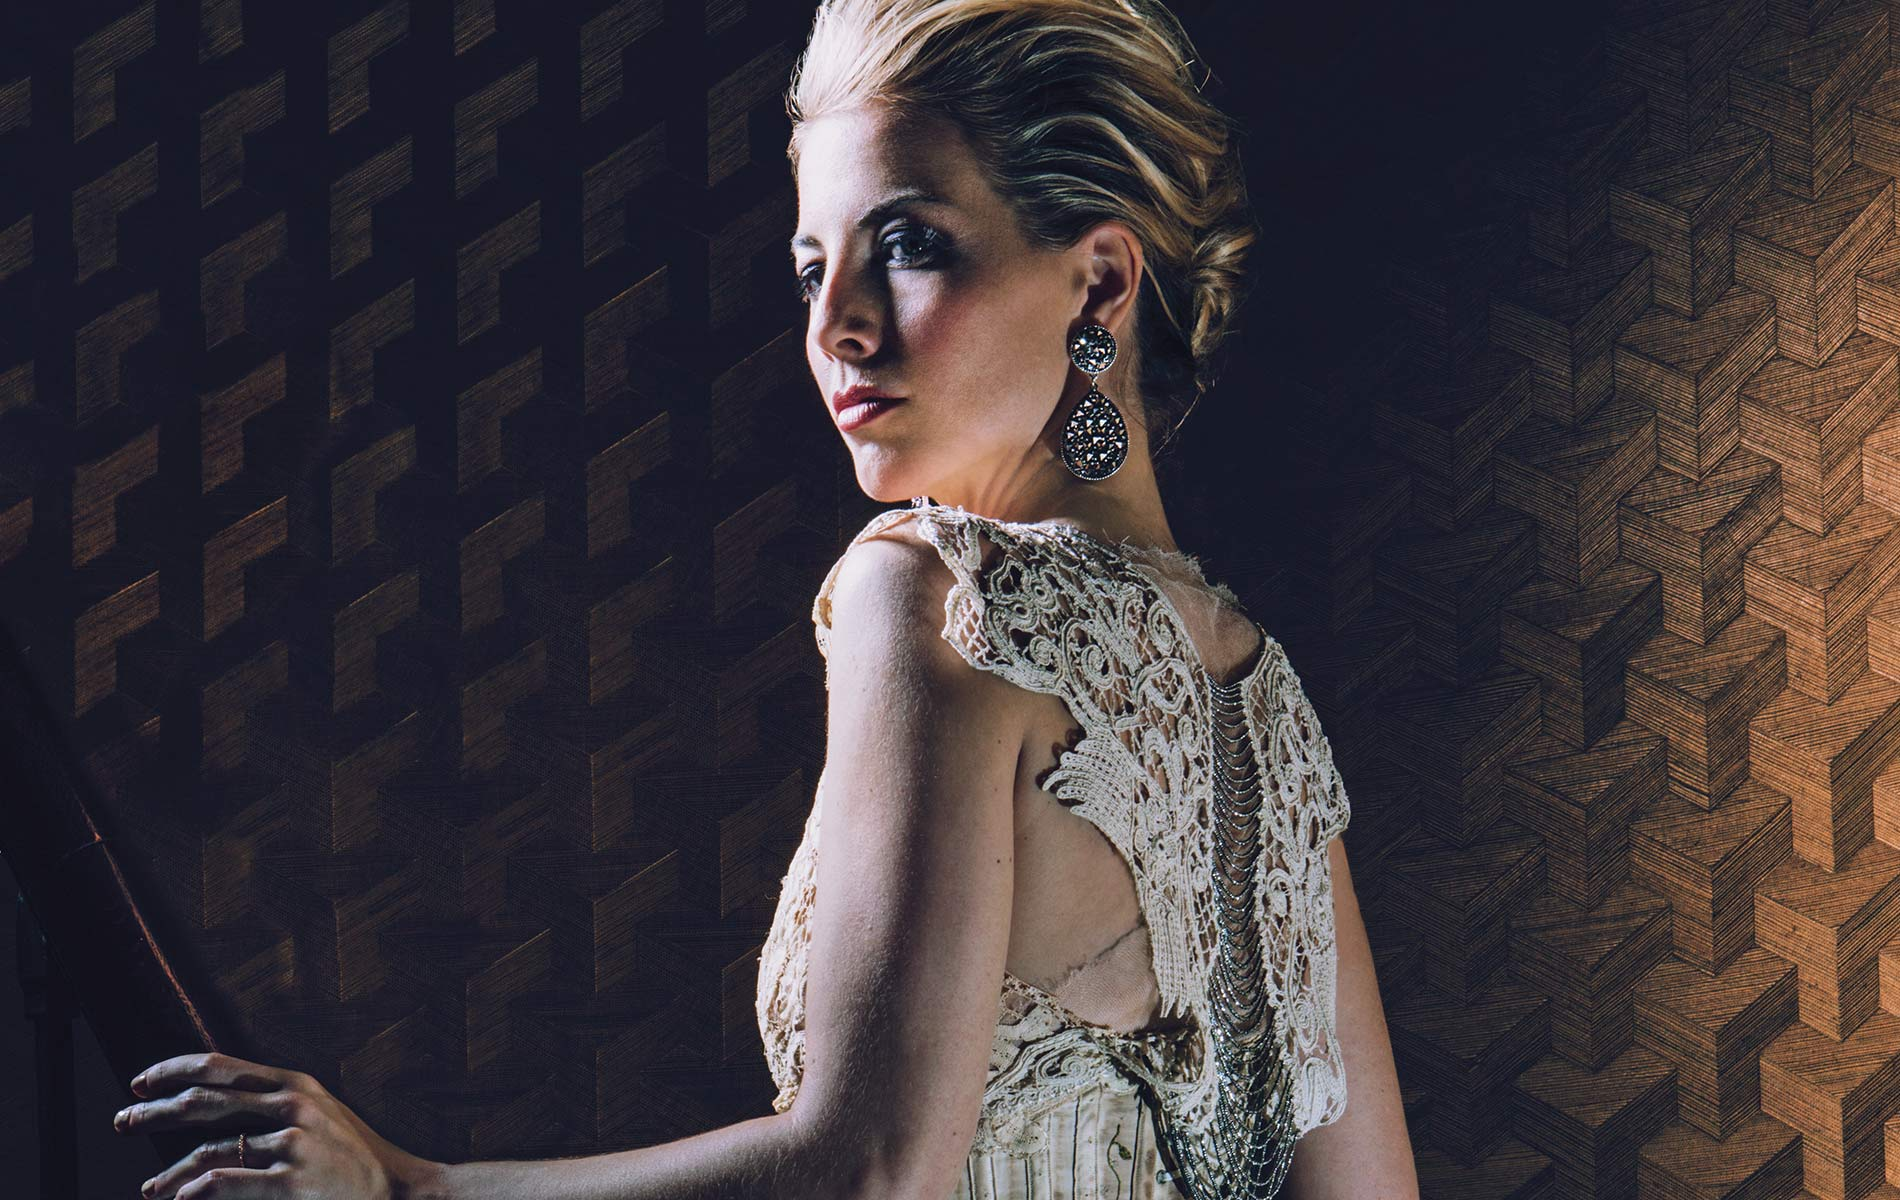 c3ec6fa889db Morgan James donning a beautiful gown by New York-based designer Mimi  Prober Sophisticate Issue